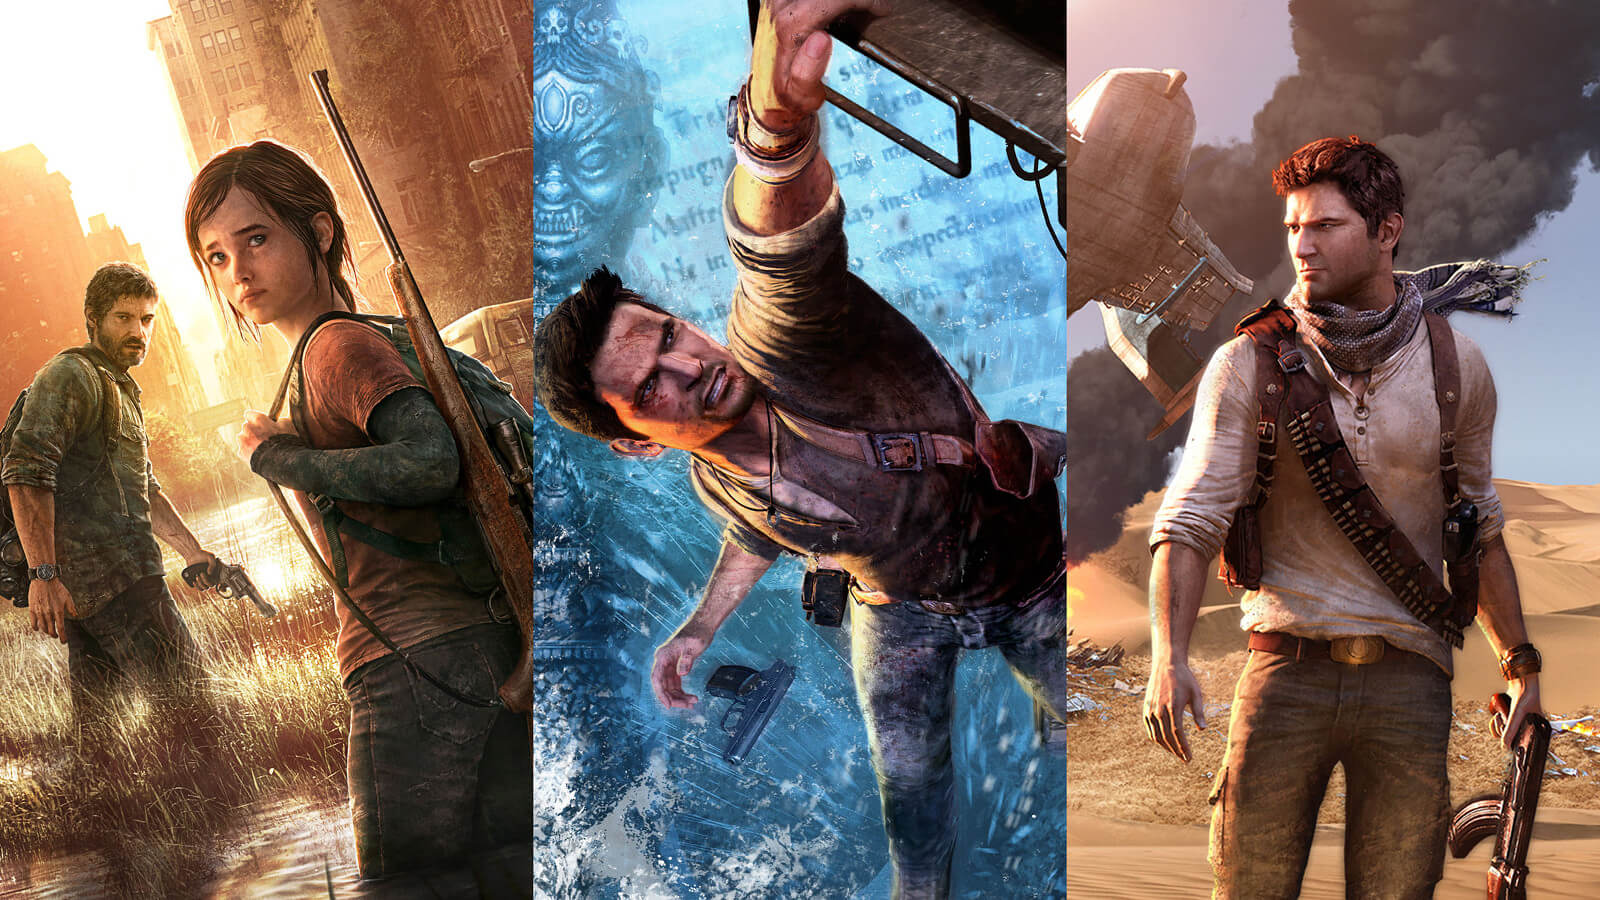 Naughty Dog tira servidores do ar